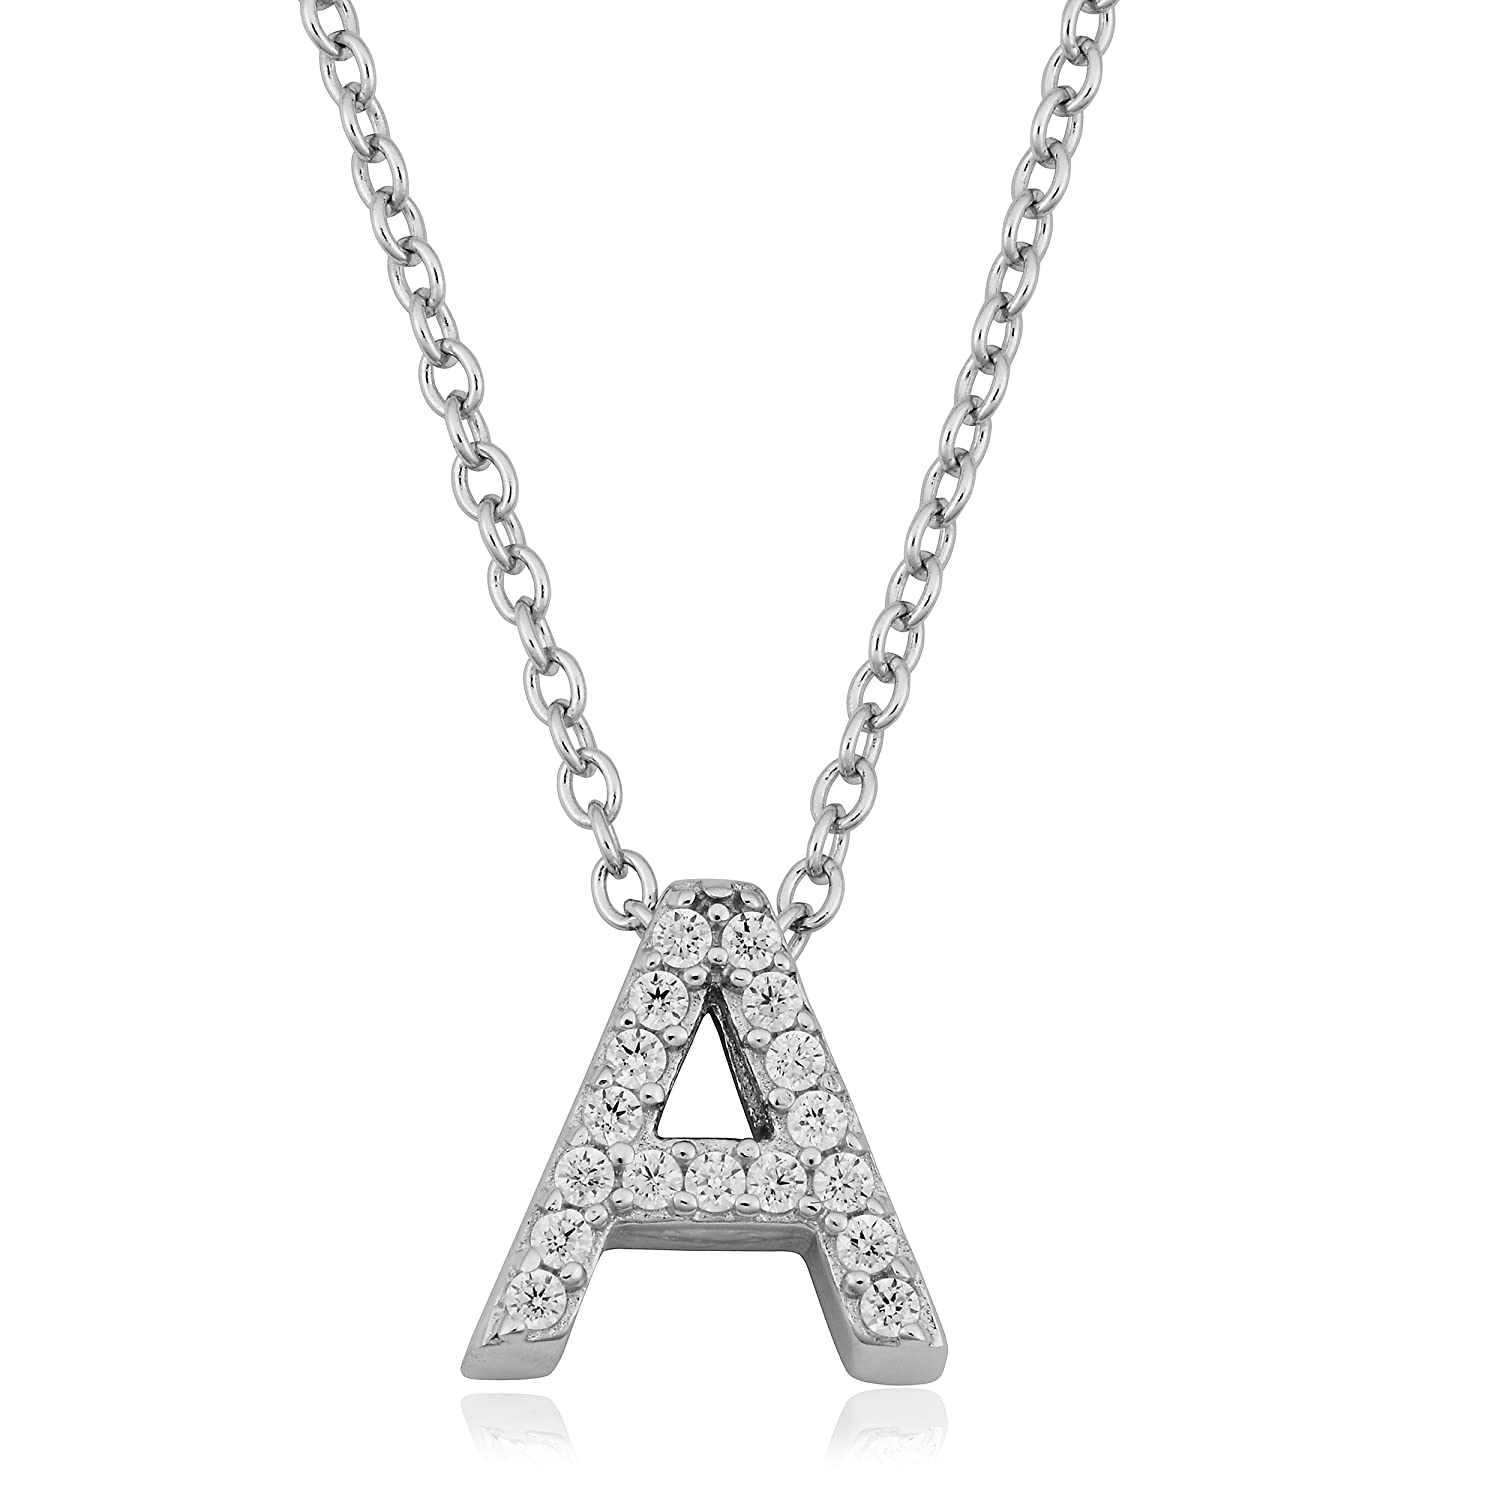 f7e1e63b1350 Amazon.com  Kooljewelry Sterling Silver and Cubic Zirconia Letter A Initial  Necklace (18 inch)  Jewelry